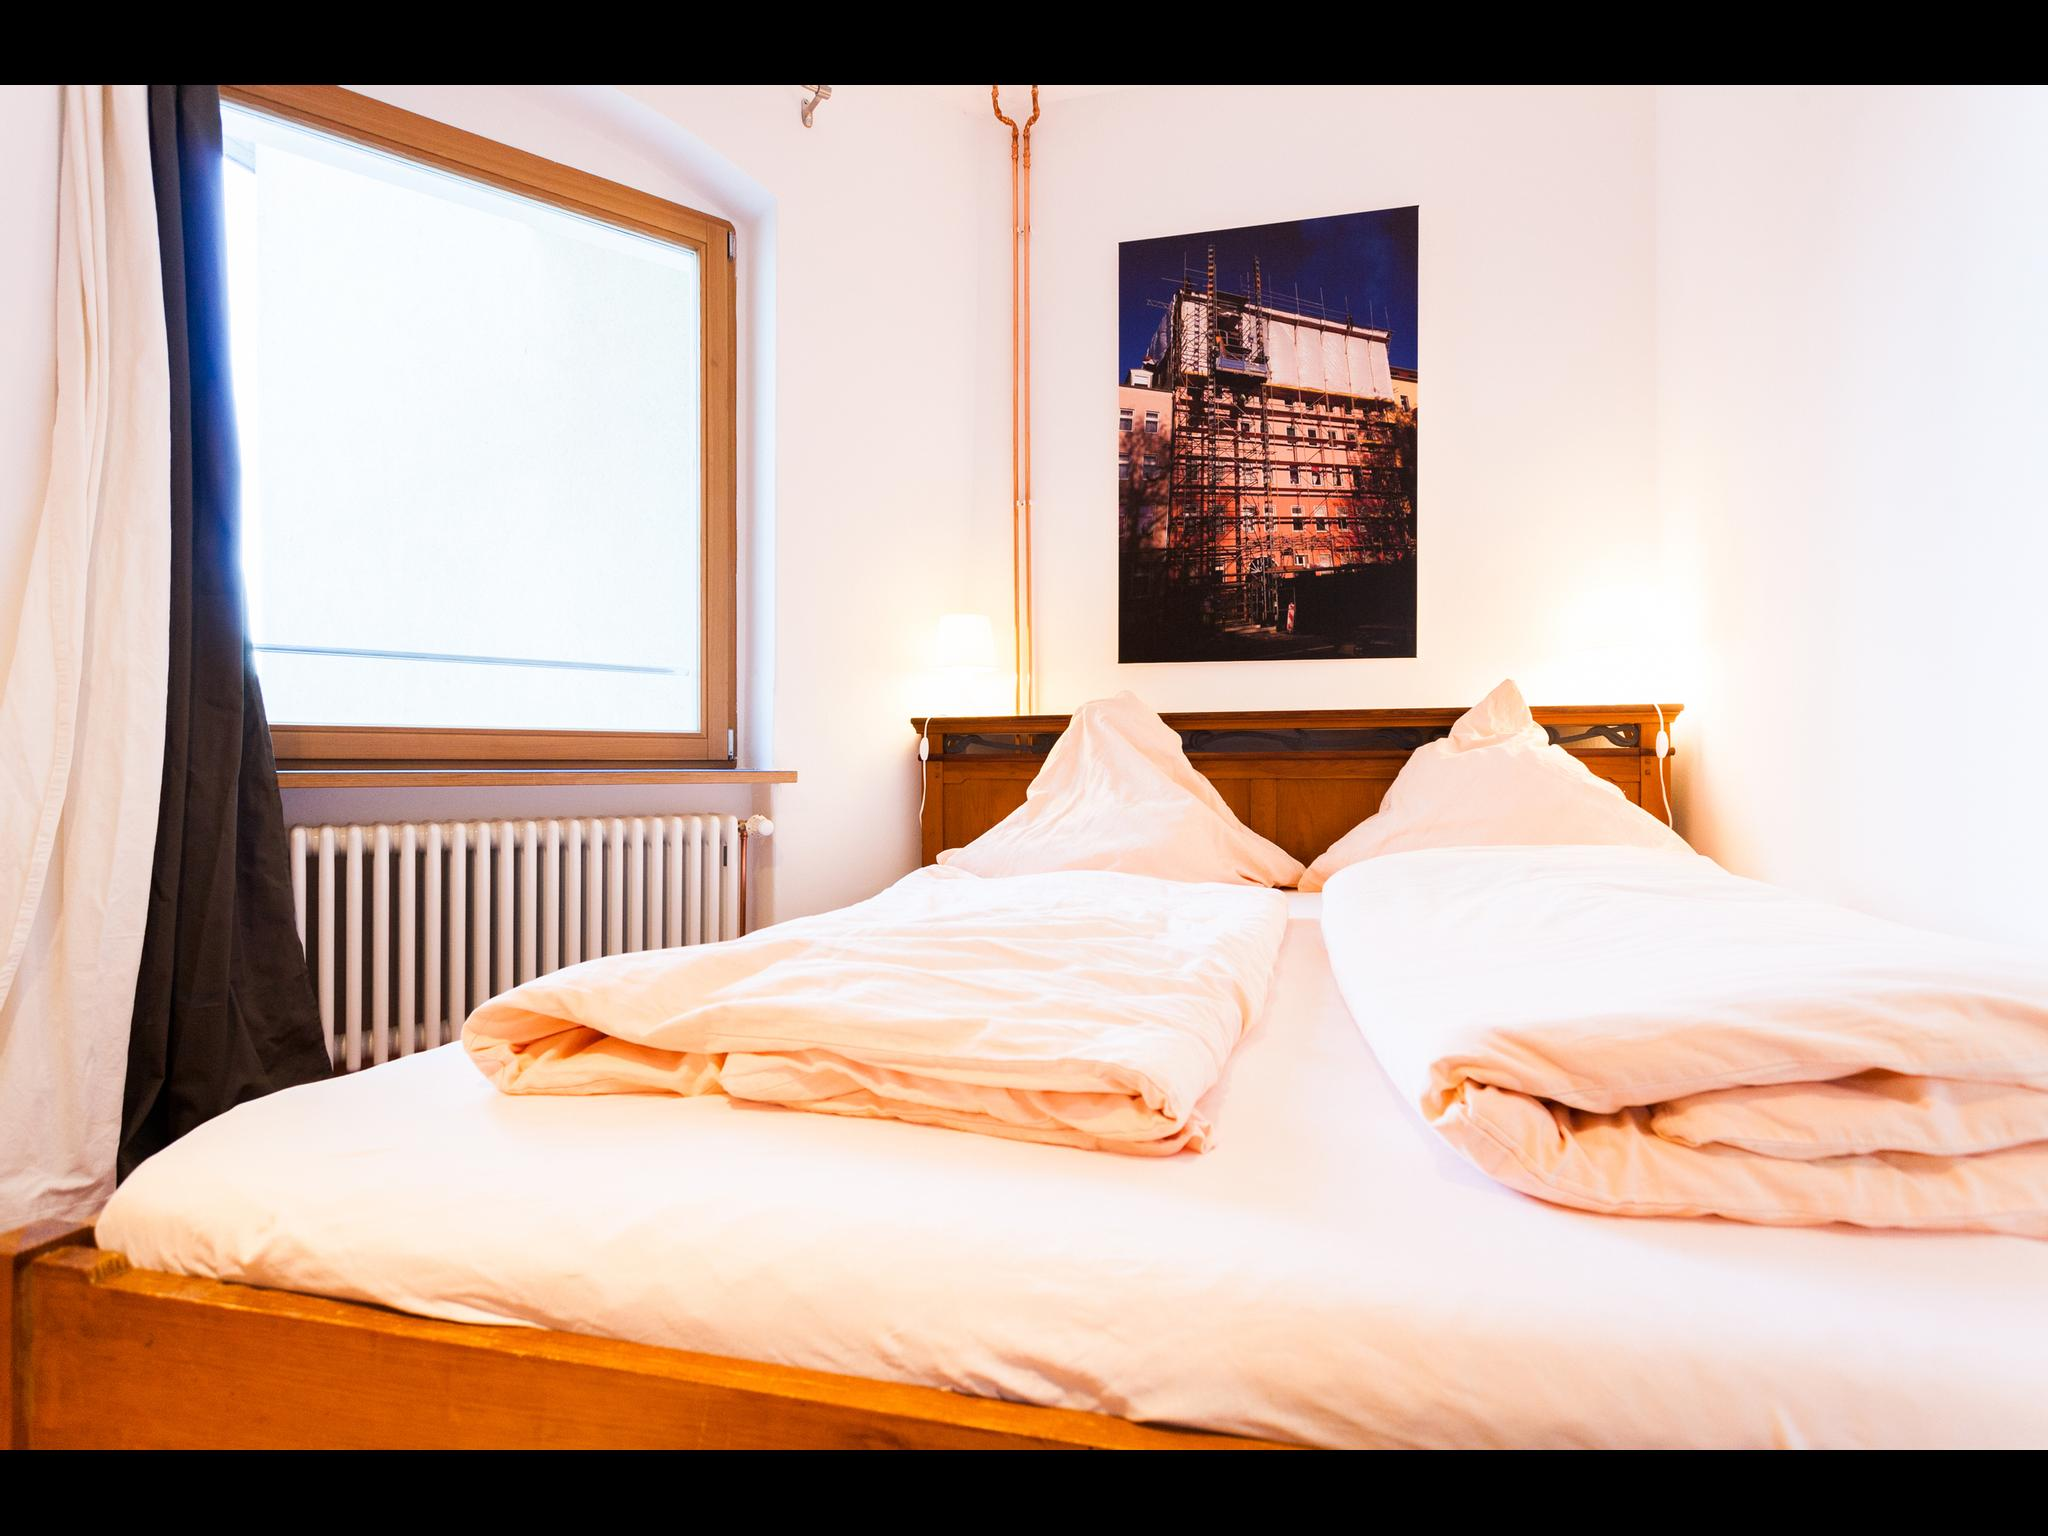 Perle - Luxury furnished apartment in Berlin